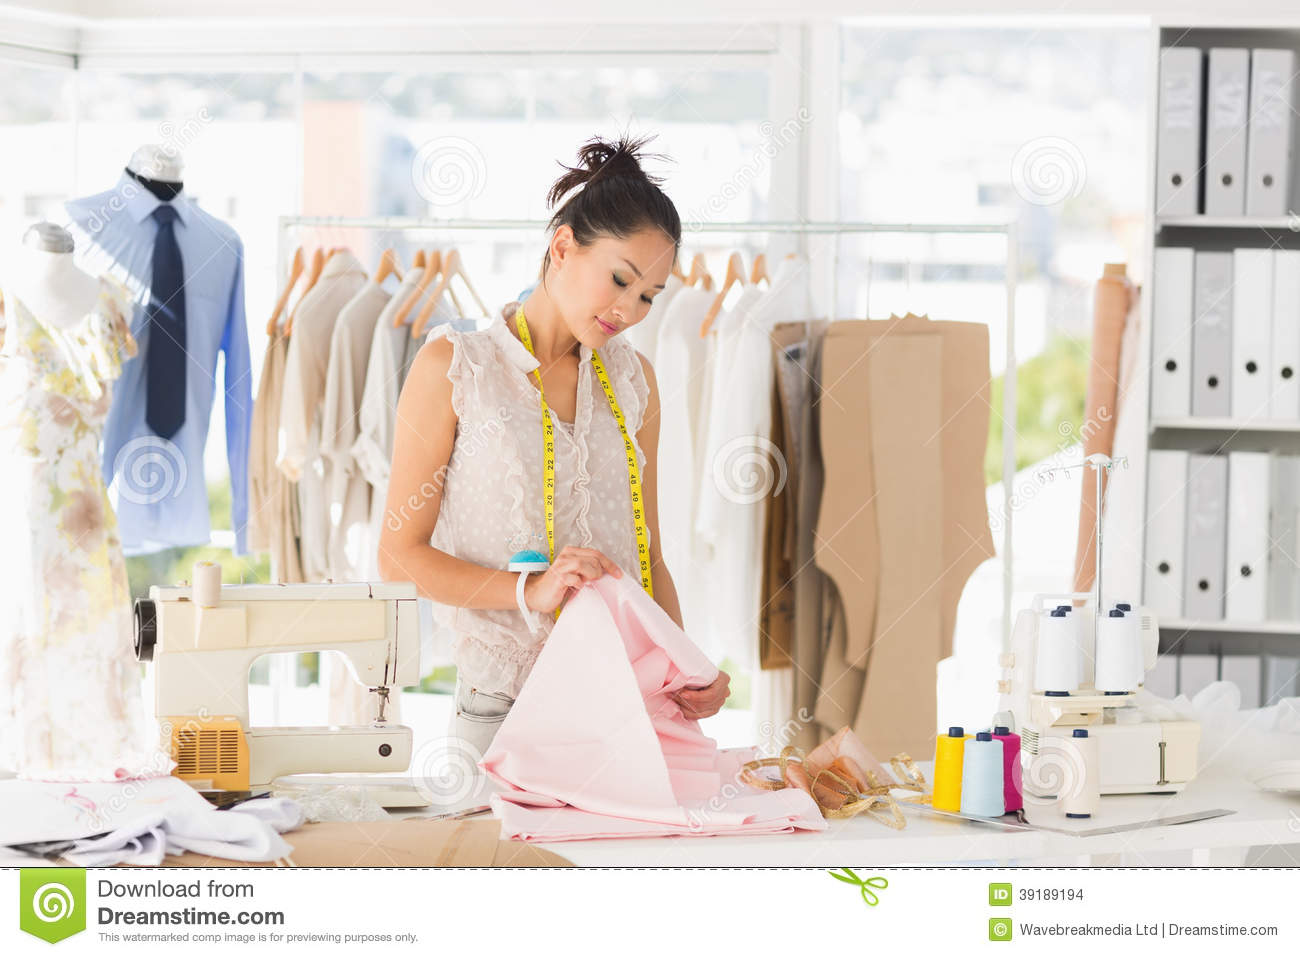 Concentrated Female Fashion Designer At Work Stock Photo